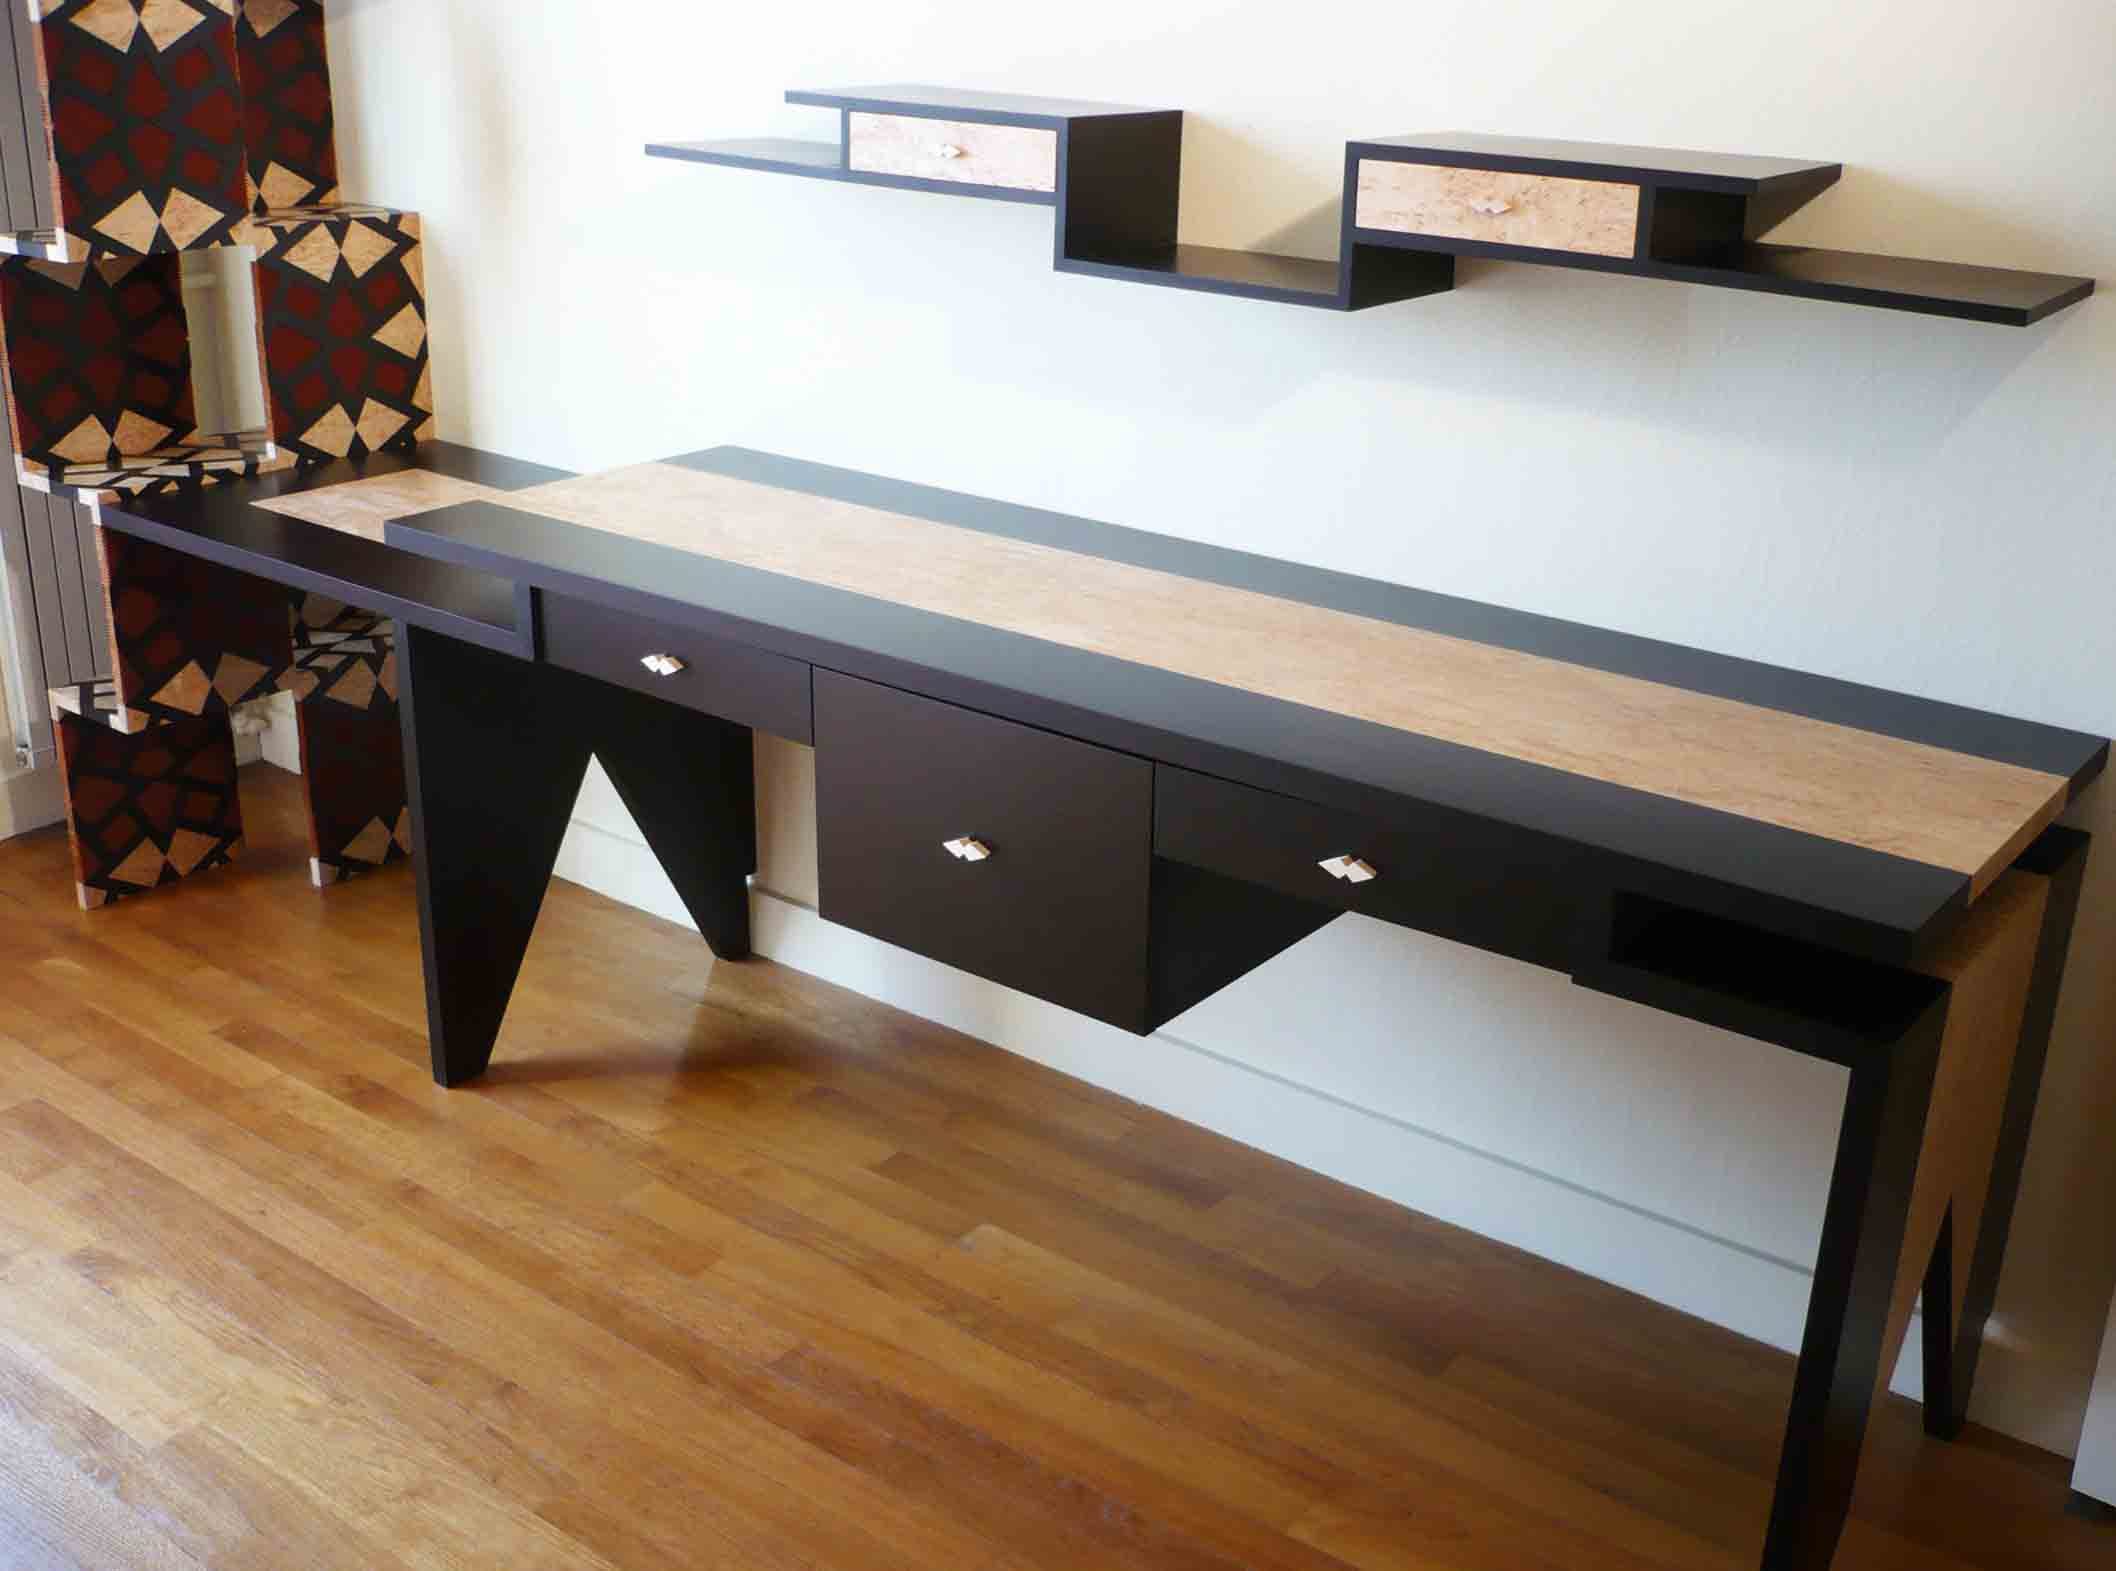 sur mesure atelier helbecque 94 ile de france paris. Black Bedroom Furniture Sets. Home Design Ideas